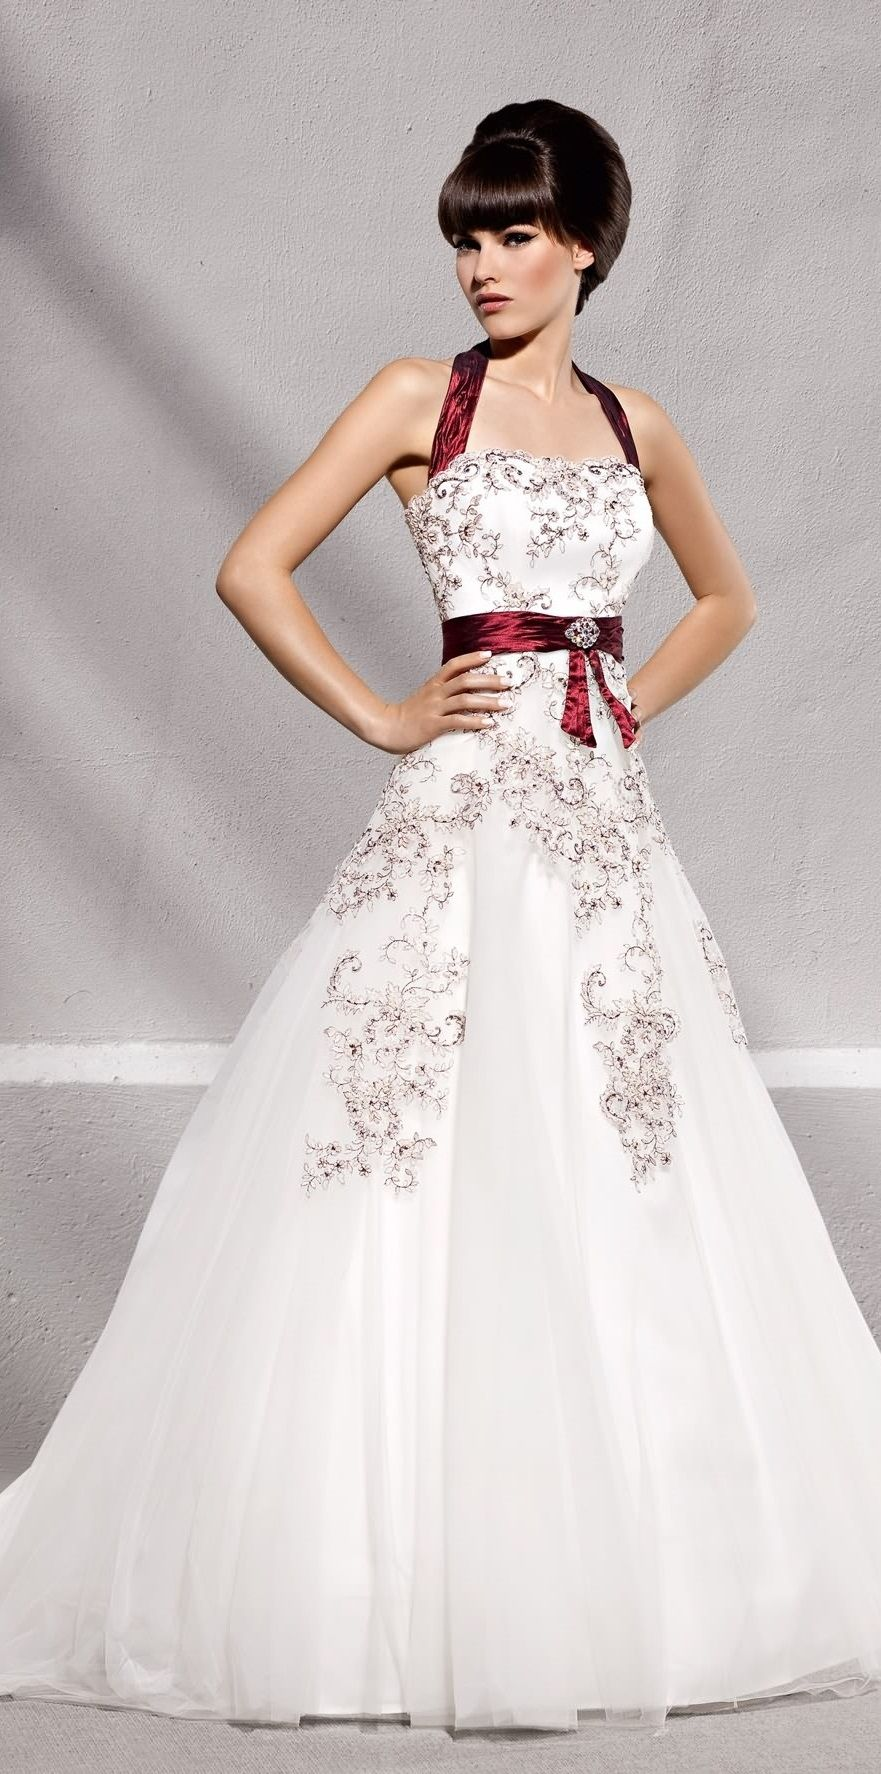 wedding dresses with red wedding dress with red accents from Elizabeth Passion